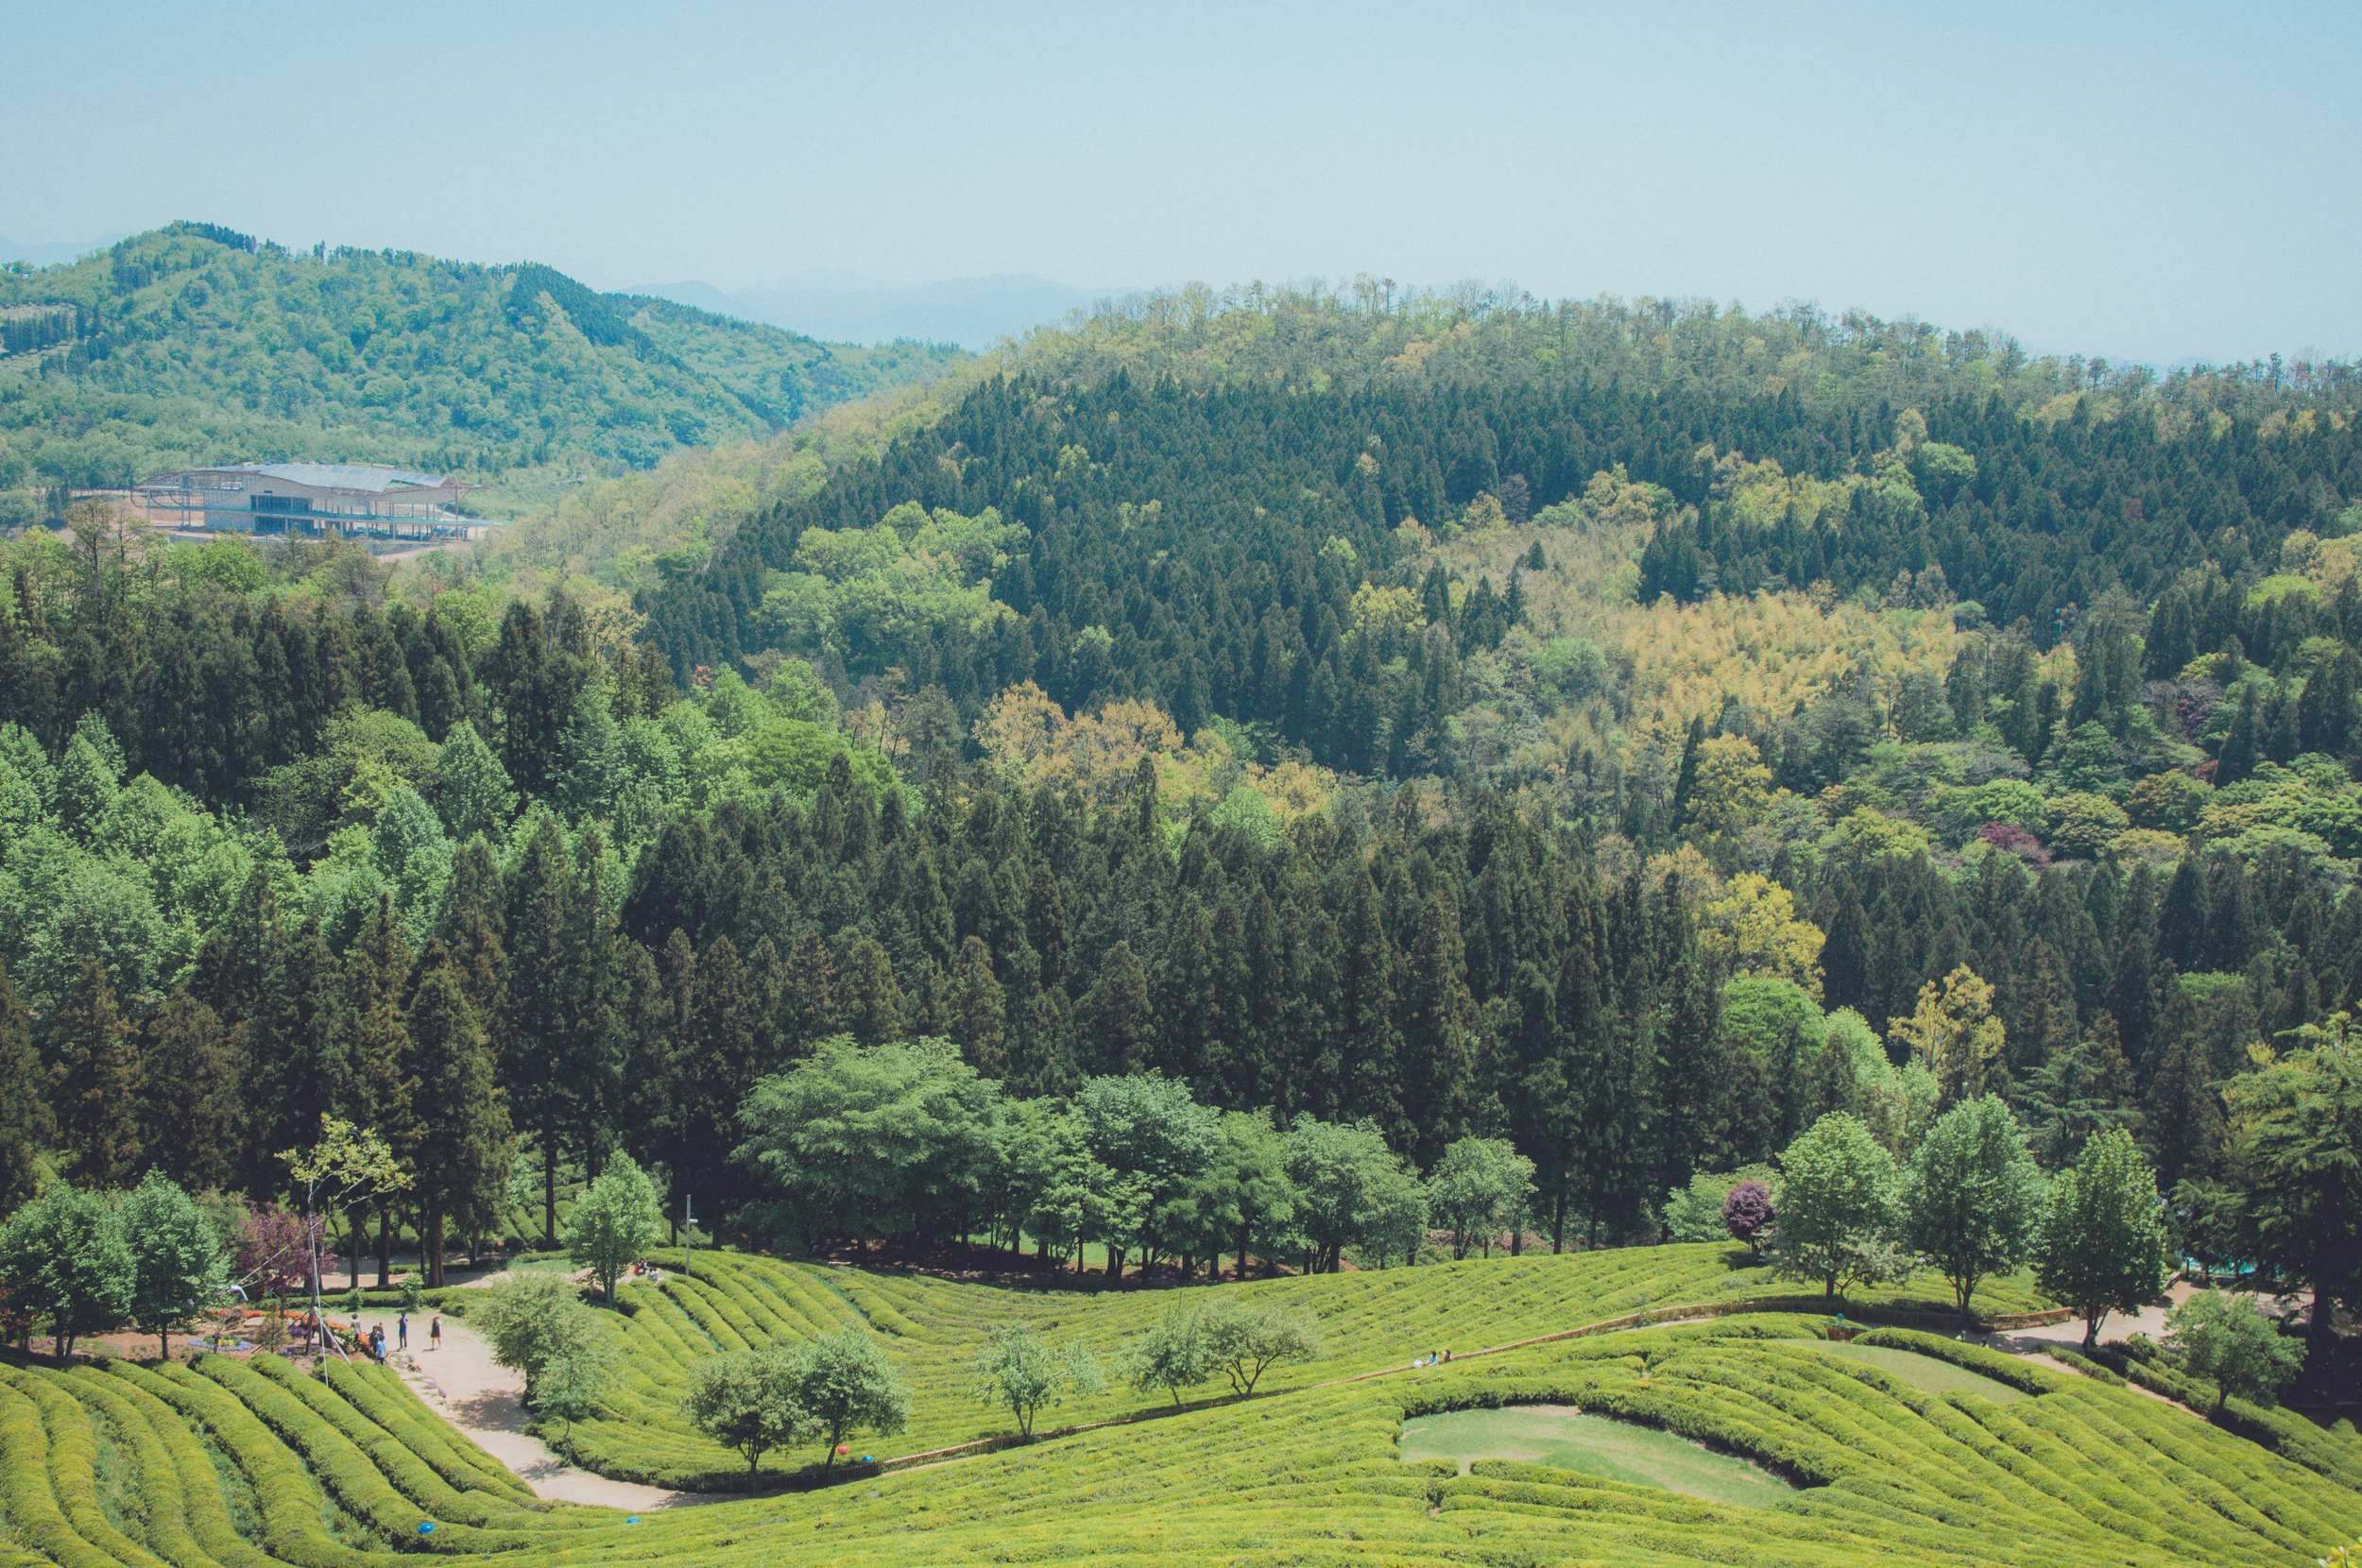 Boseong Green Tea Fields (15 of 21).jpg